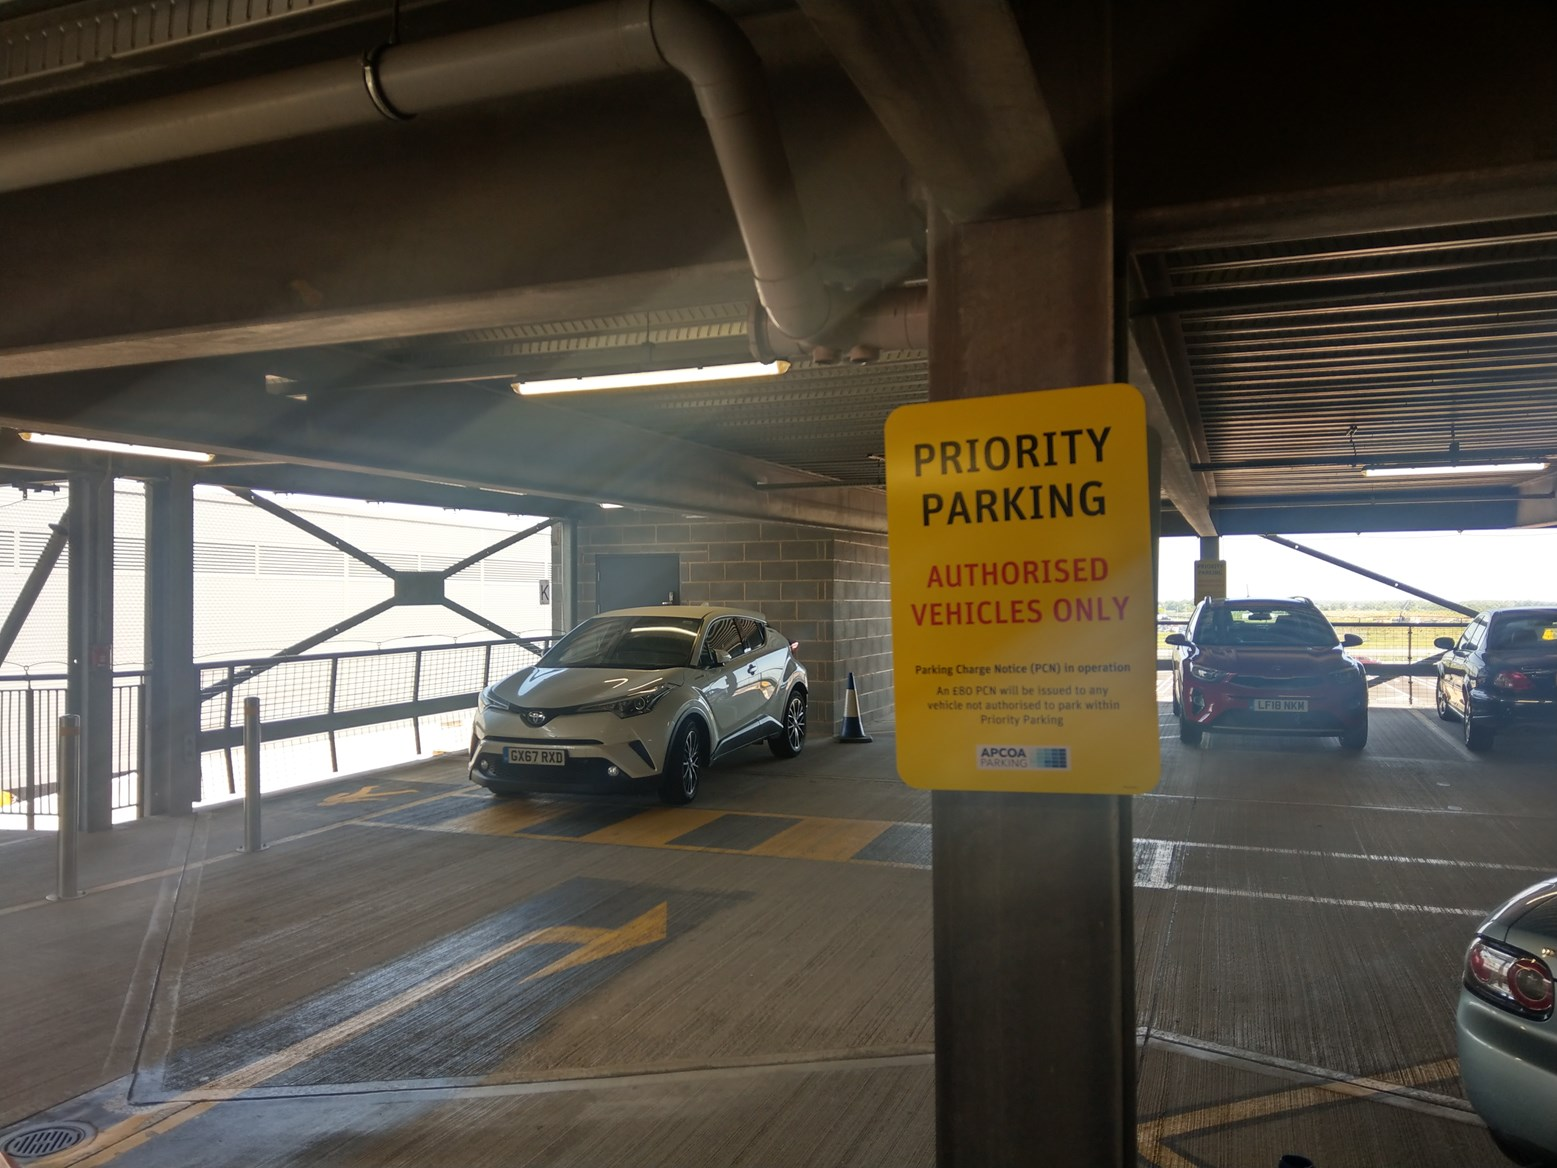 Toyota C-HR as an airport accomplice